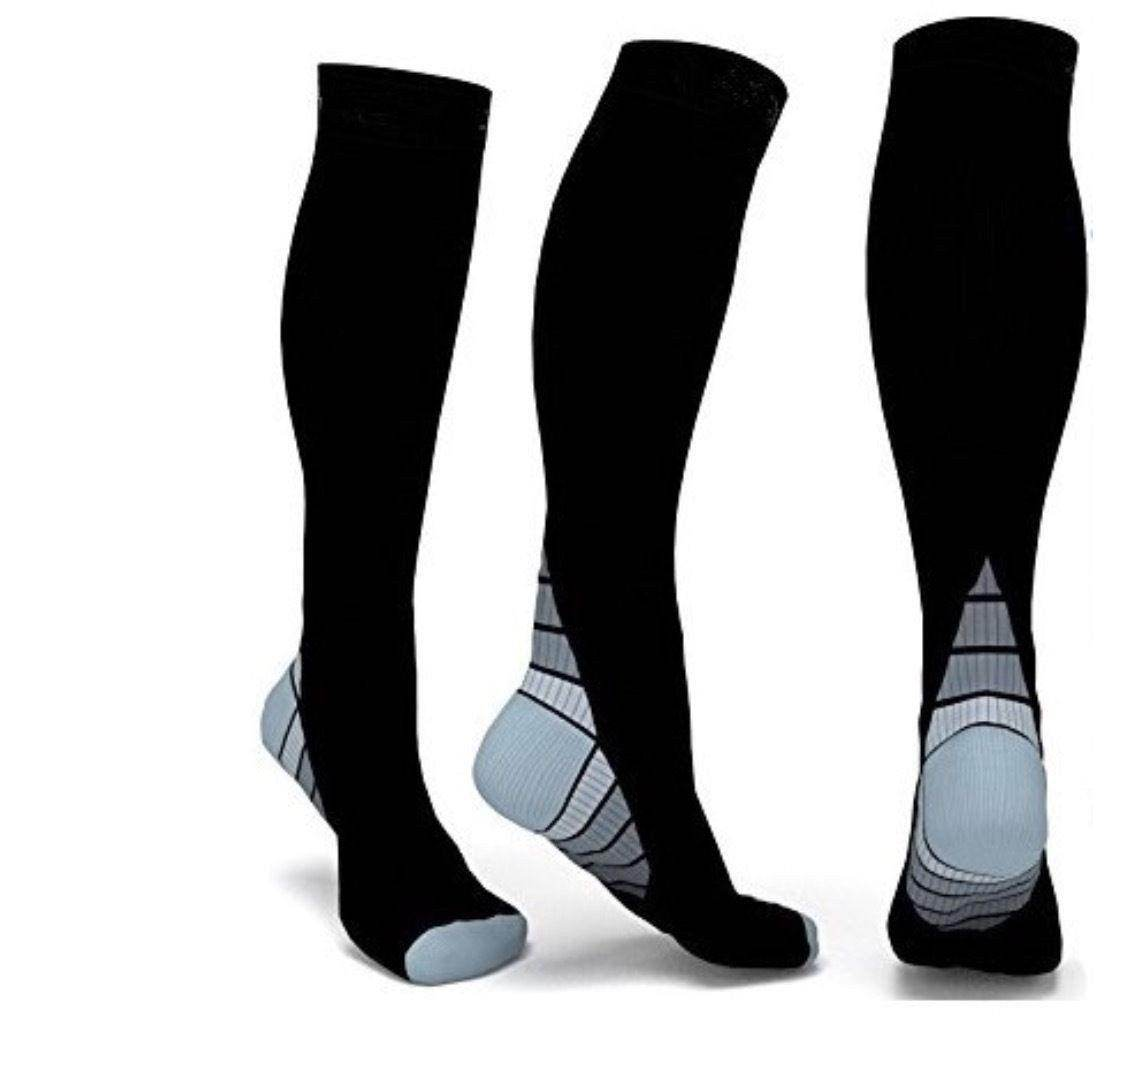 Athletic Fit Compression Socks with Graduated Target Zones 20-30 mmHg Support Stockings - Best Compression Socks Sale